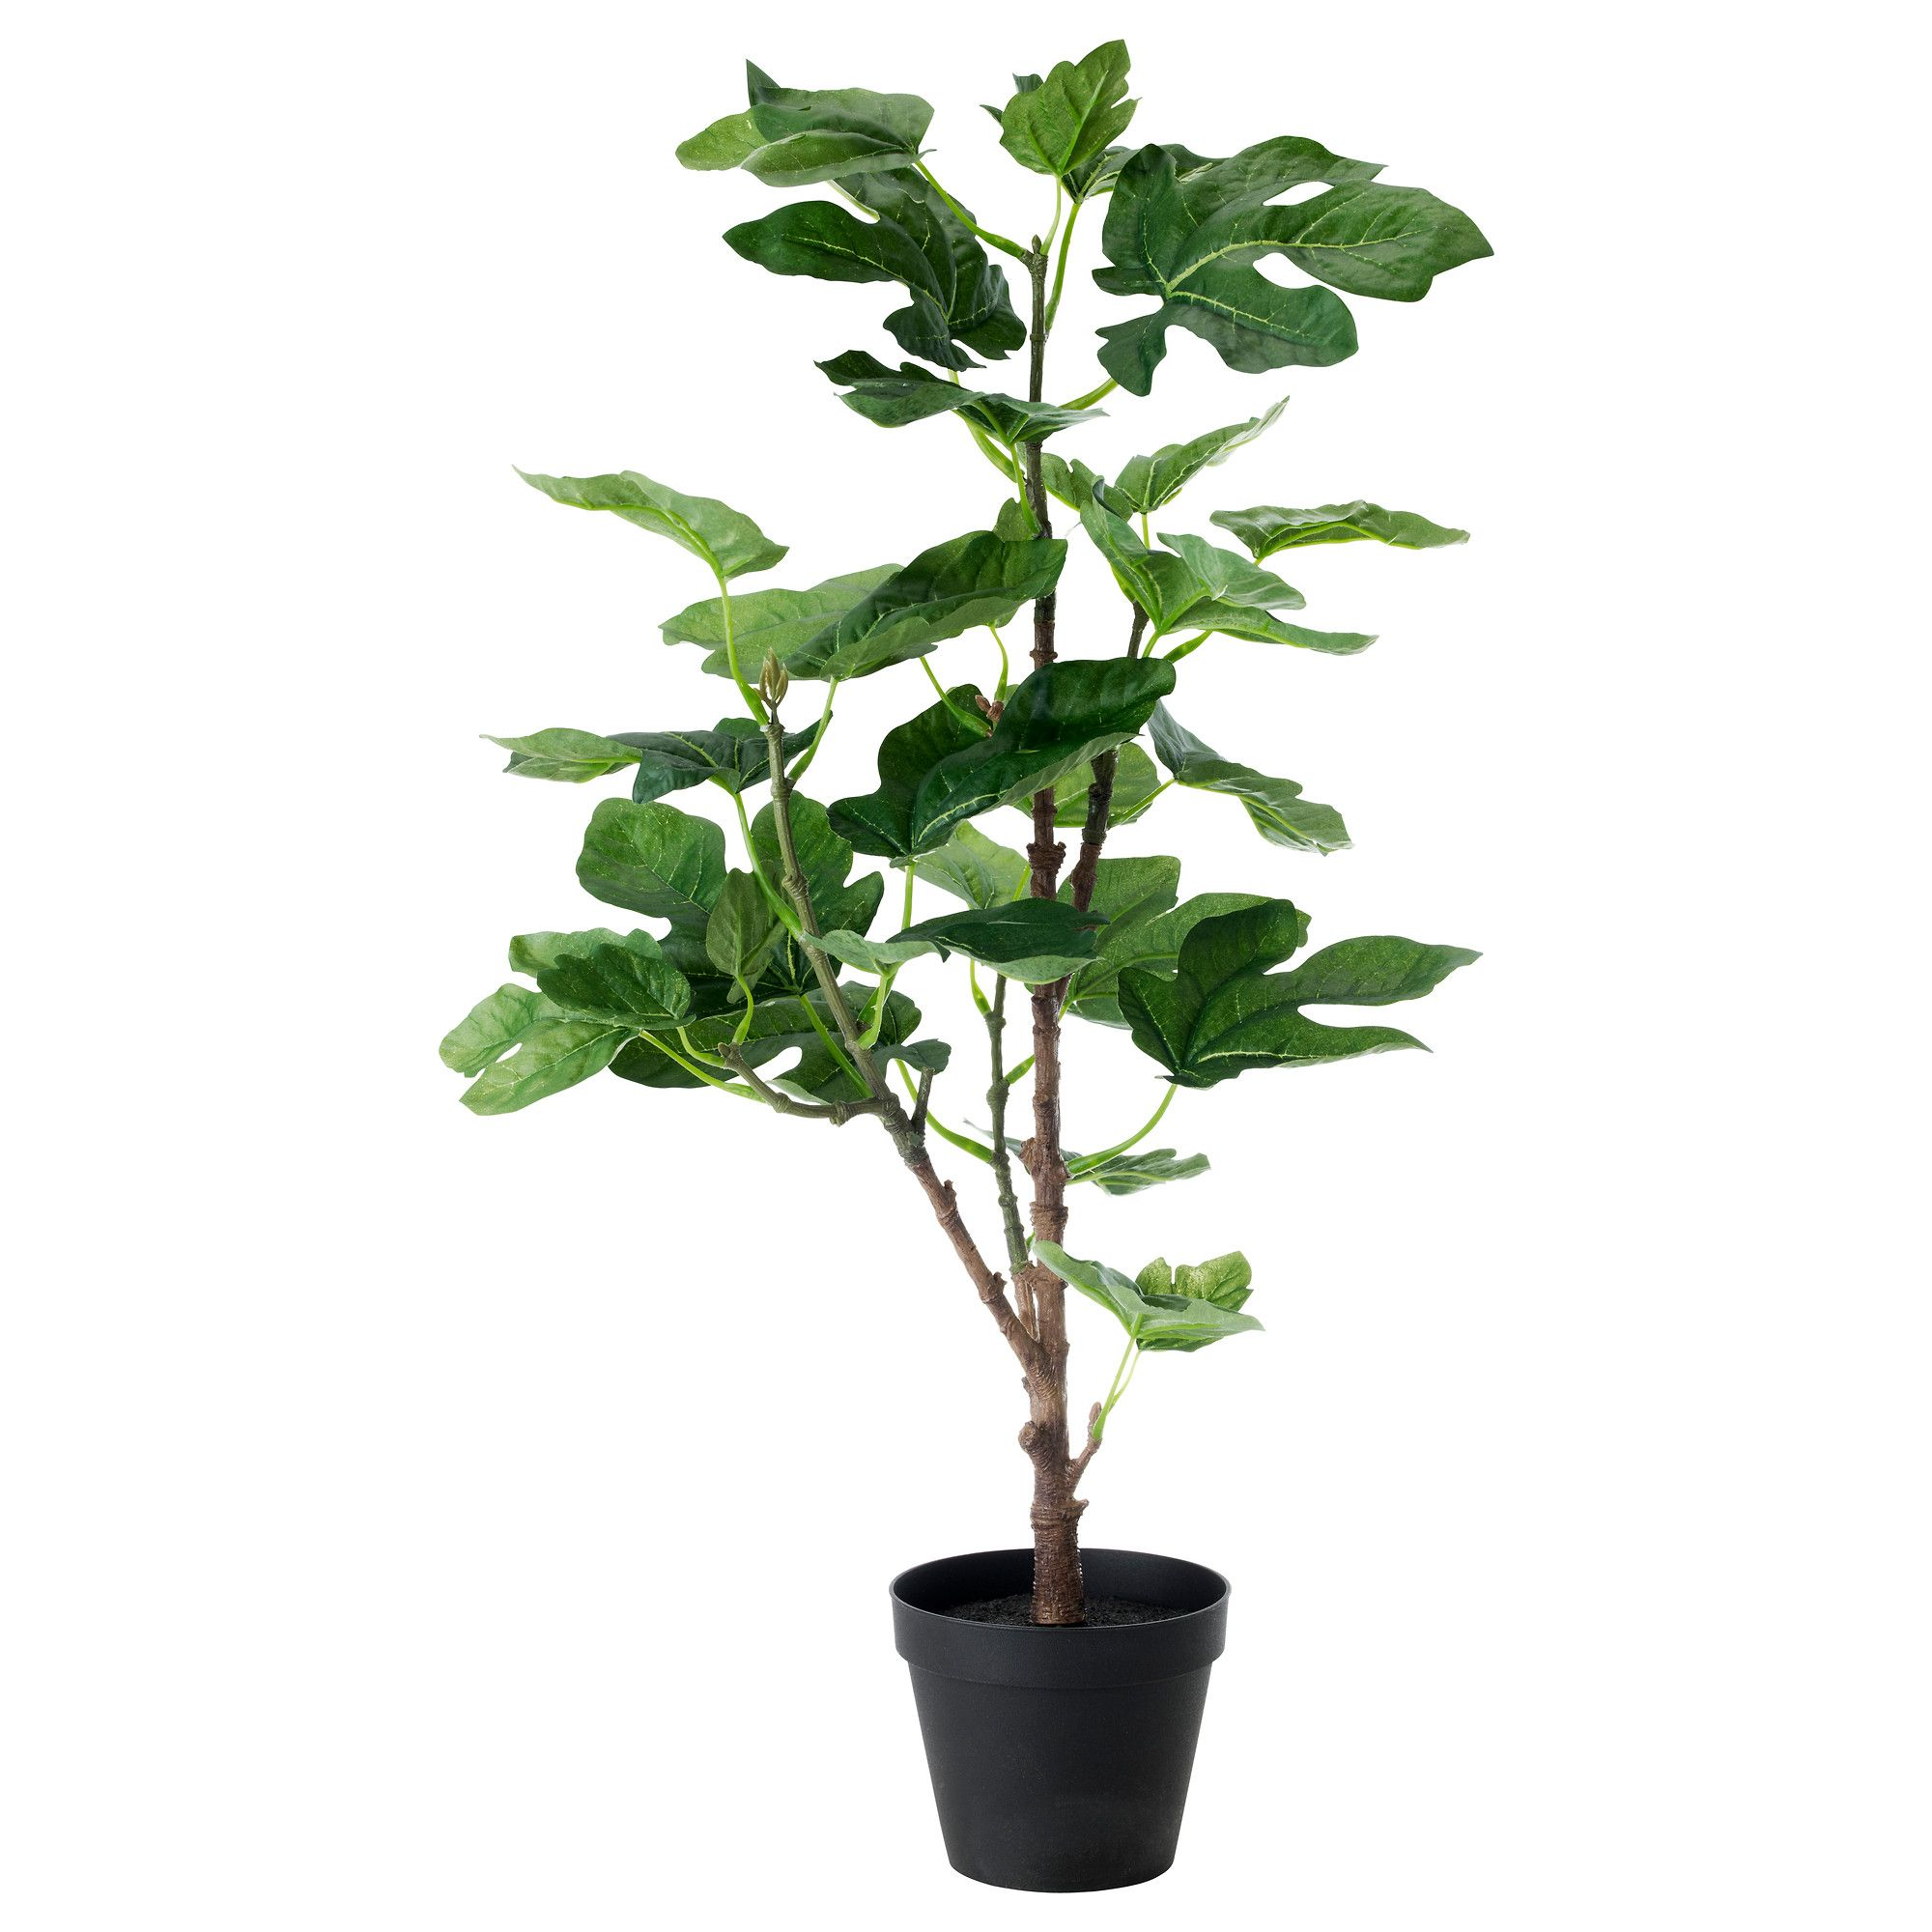 Lifelike Plants Fejka Artificial Potted Plant Ikea 14 99 Backyard